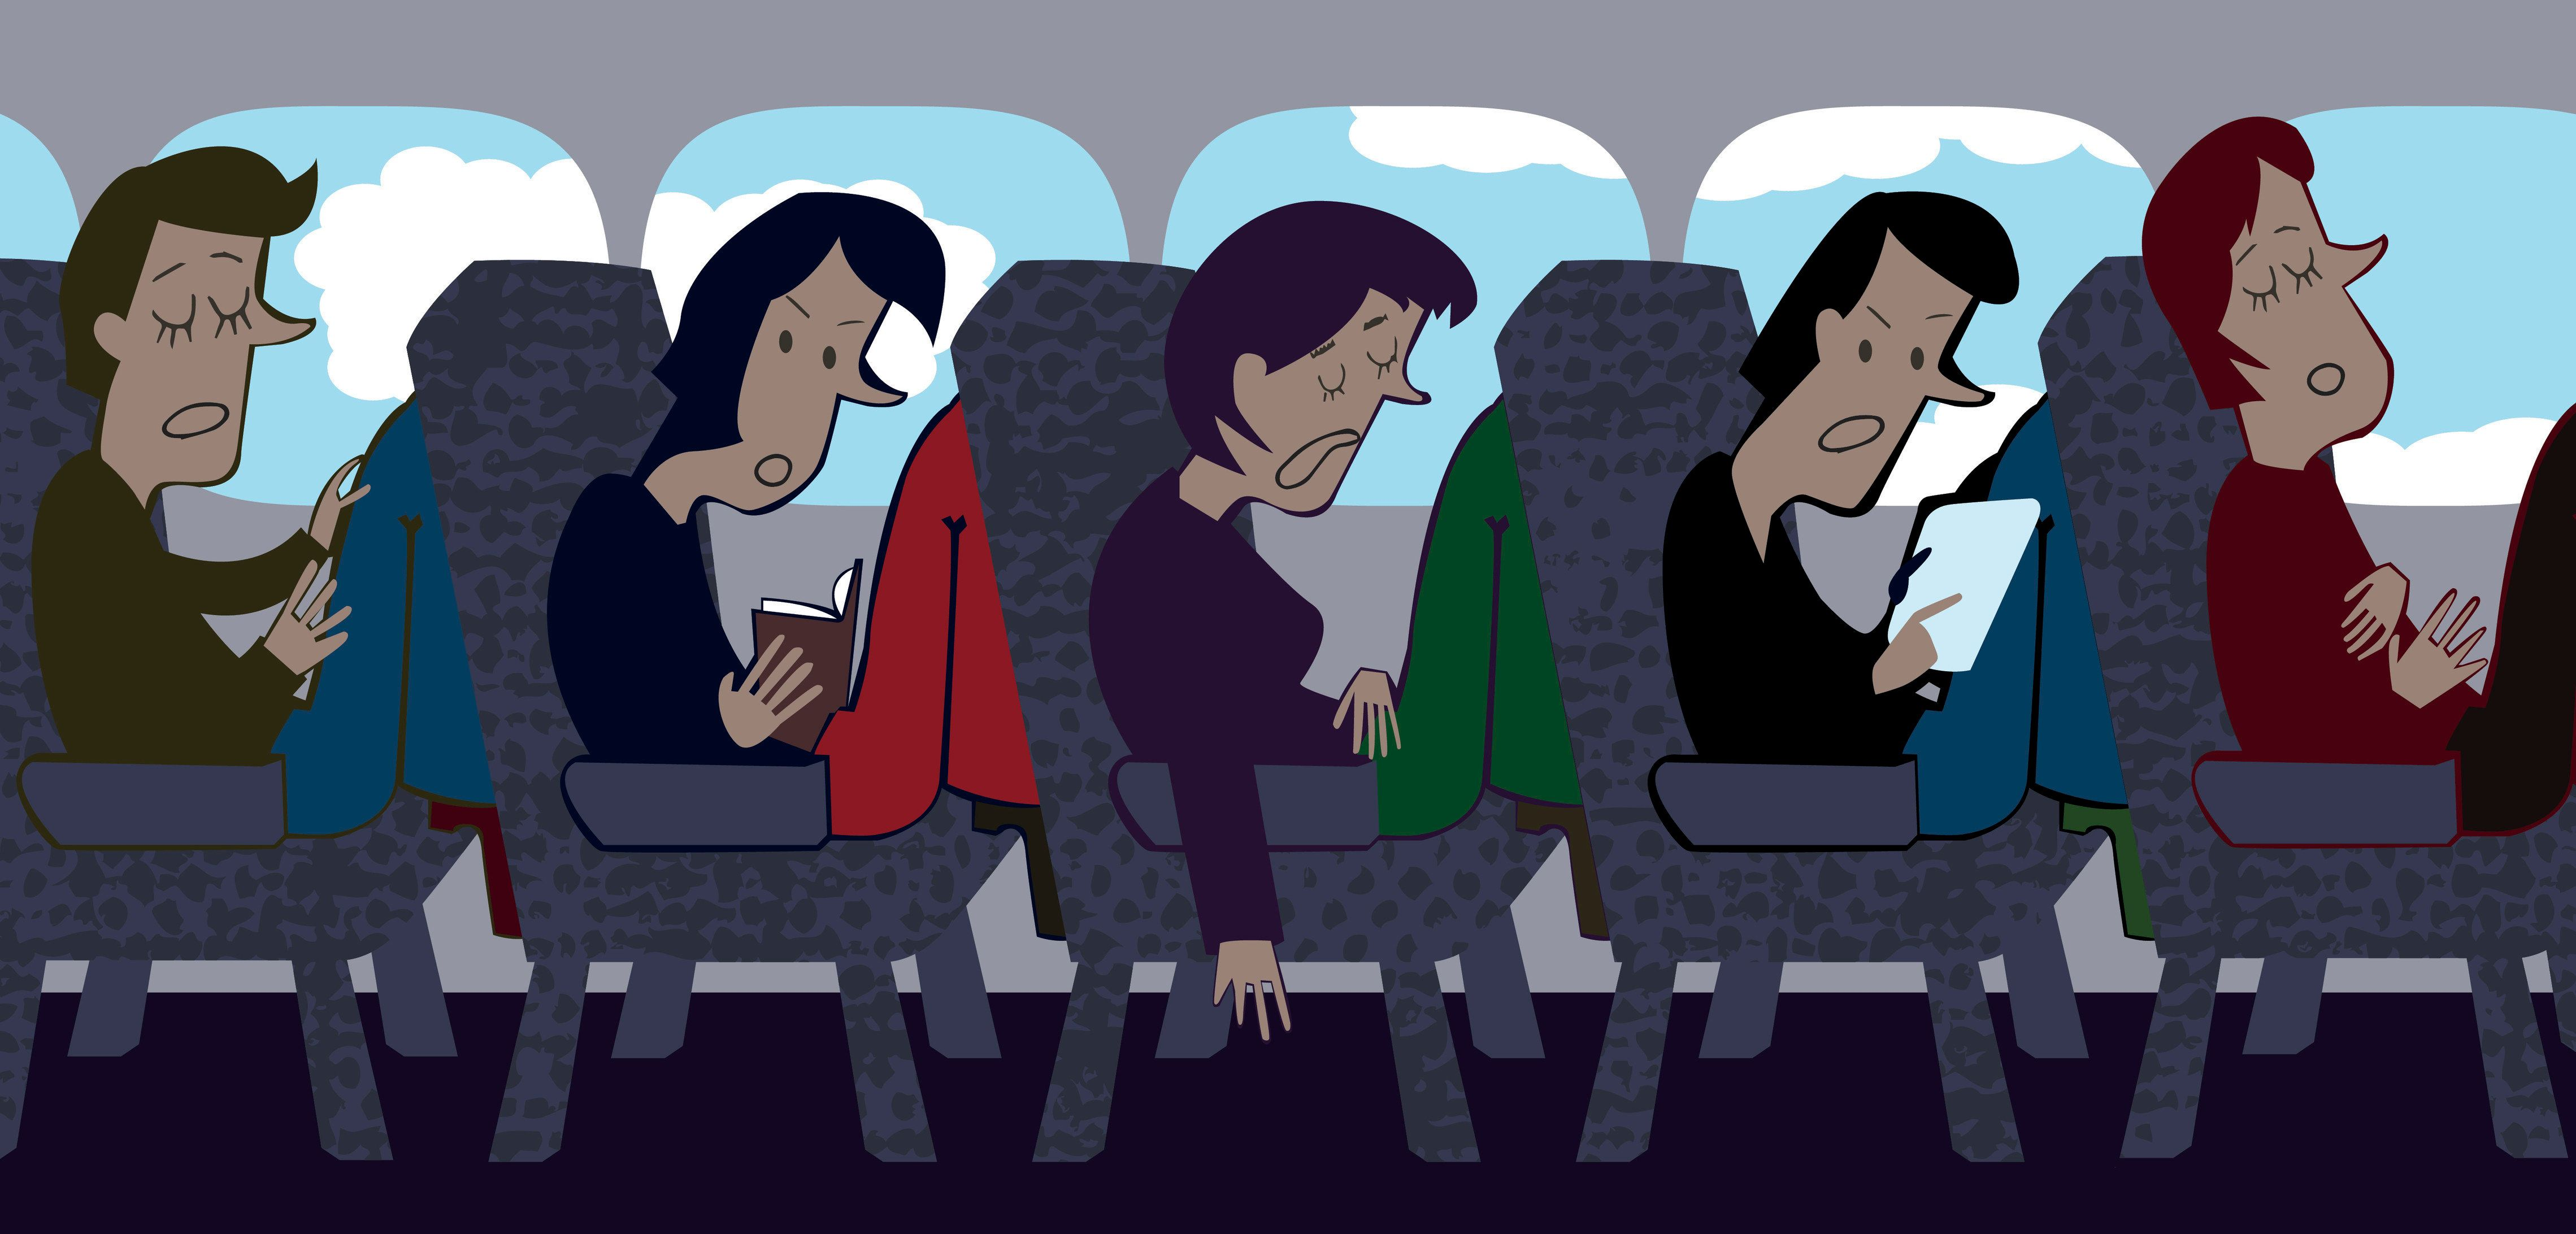 Incomfortables seats and insufficient space for your legs. Welcome to Squeezed Airline!